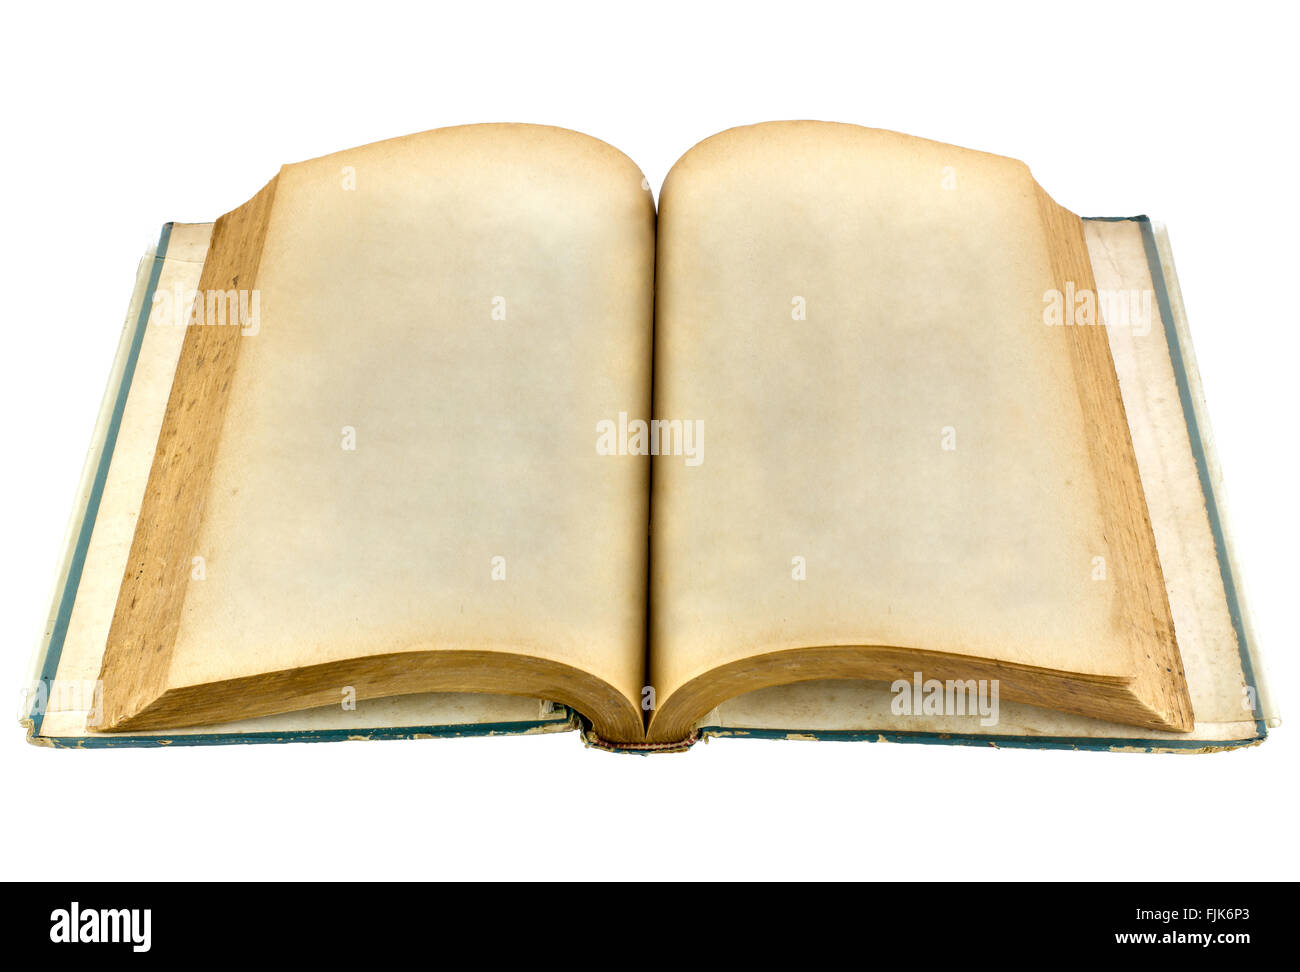 old book open on white background with clipping path perspective